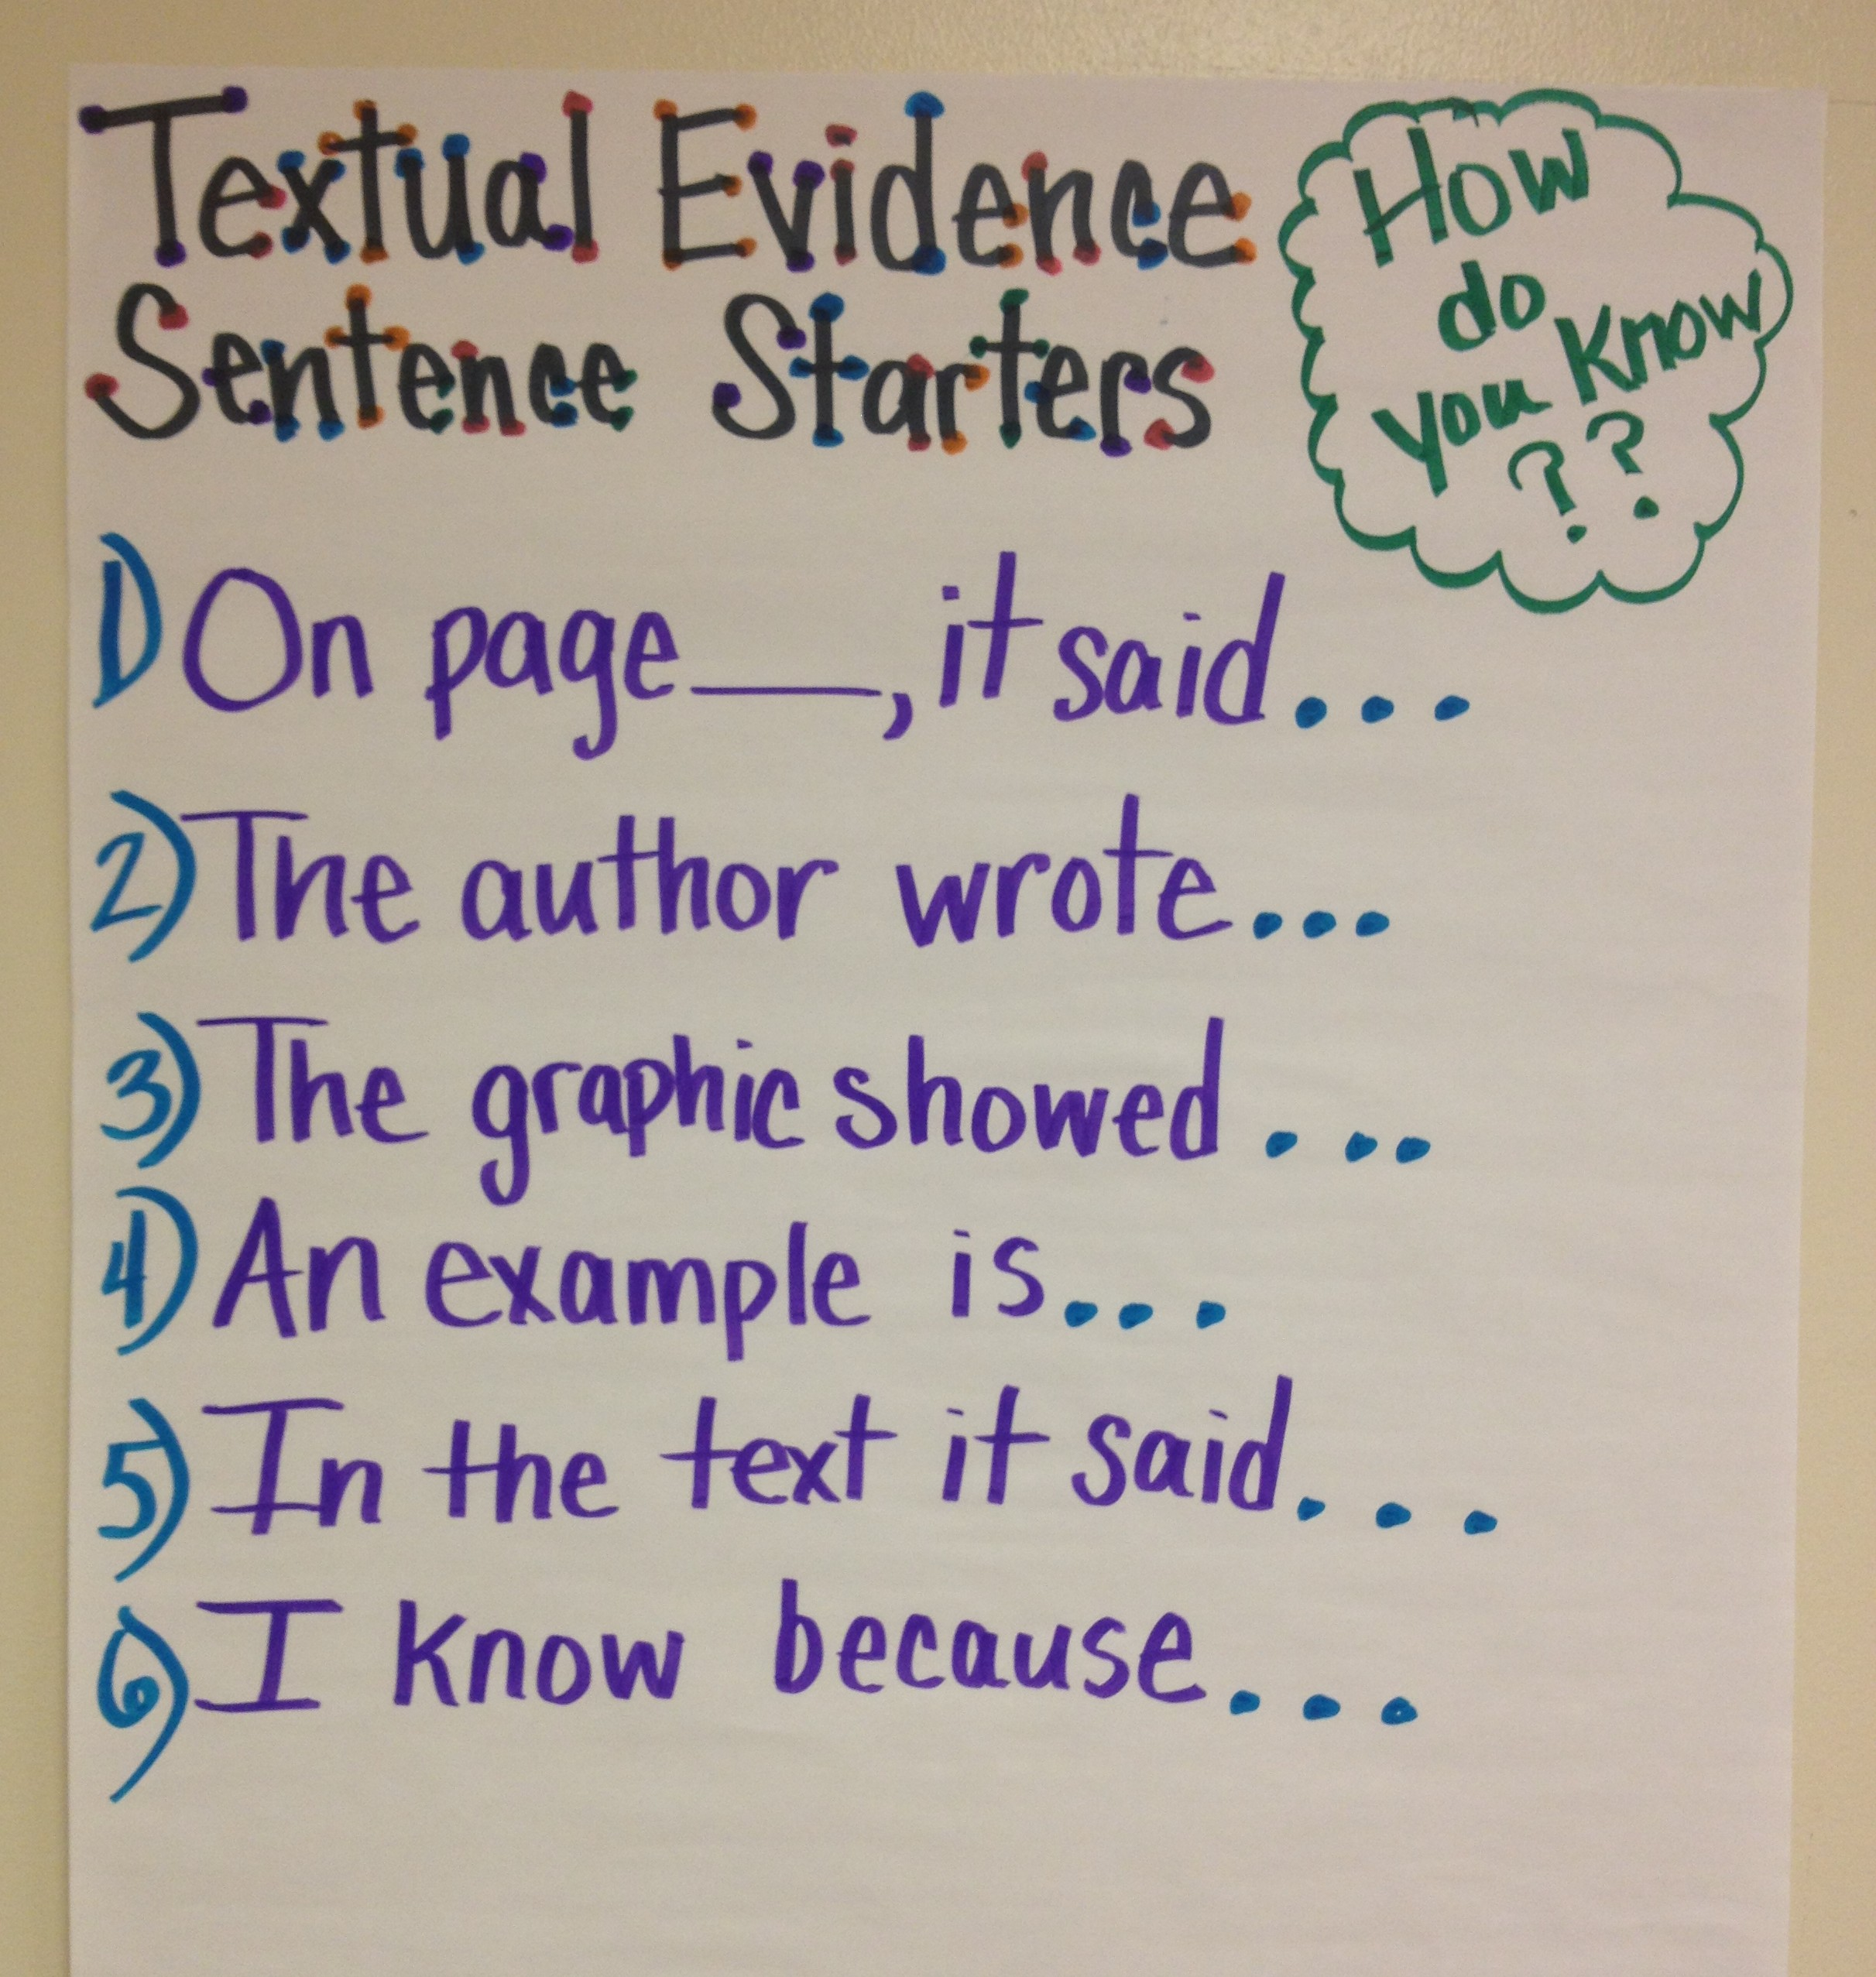 Textual-Evidence